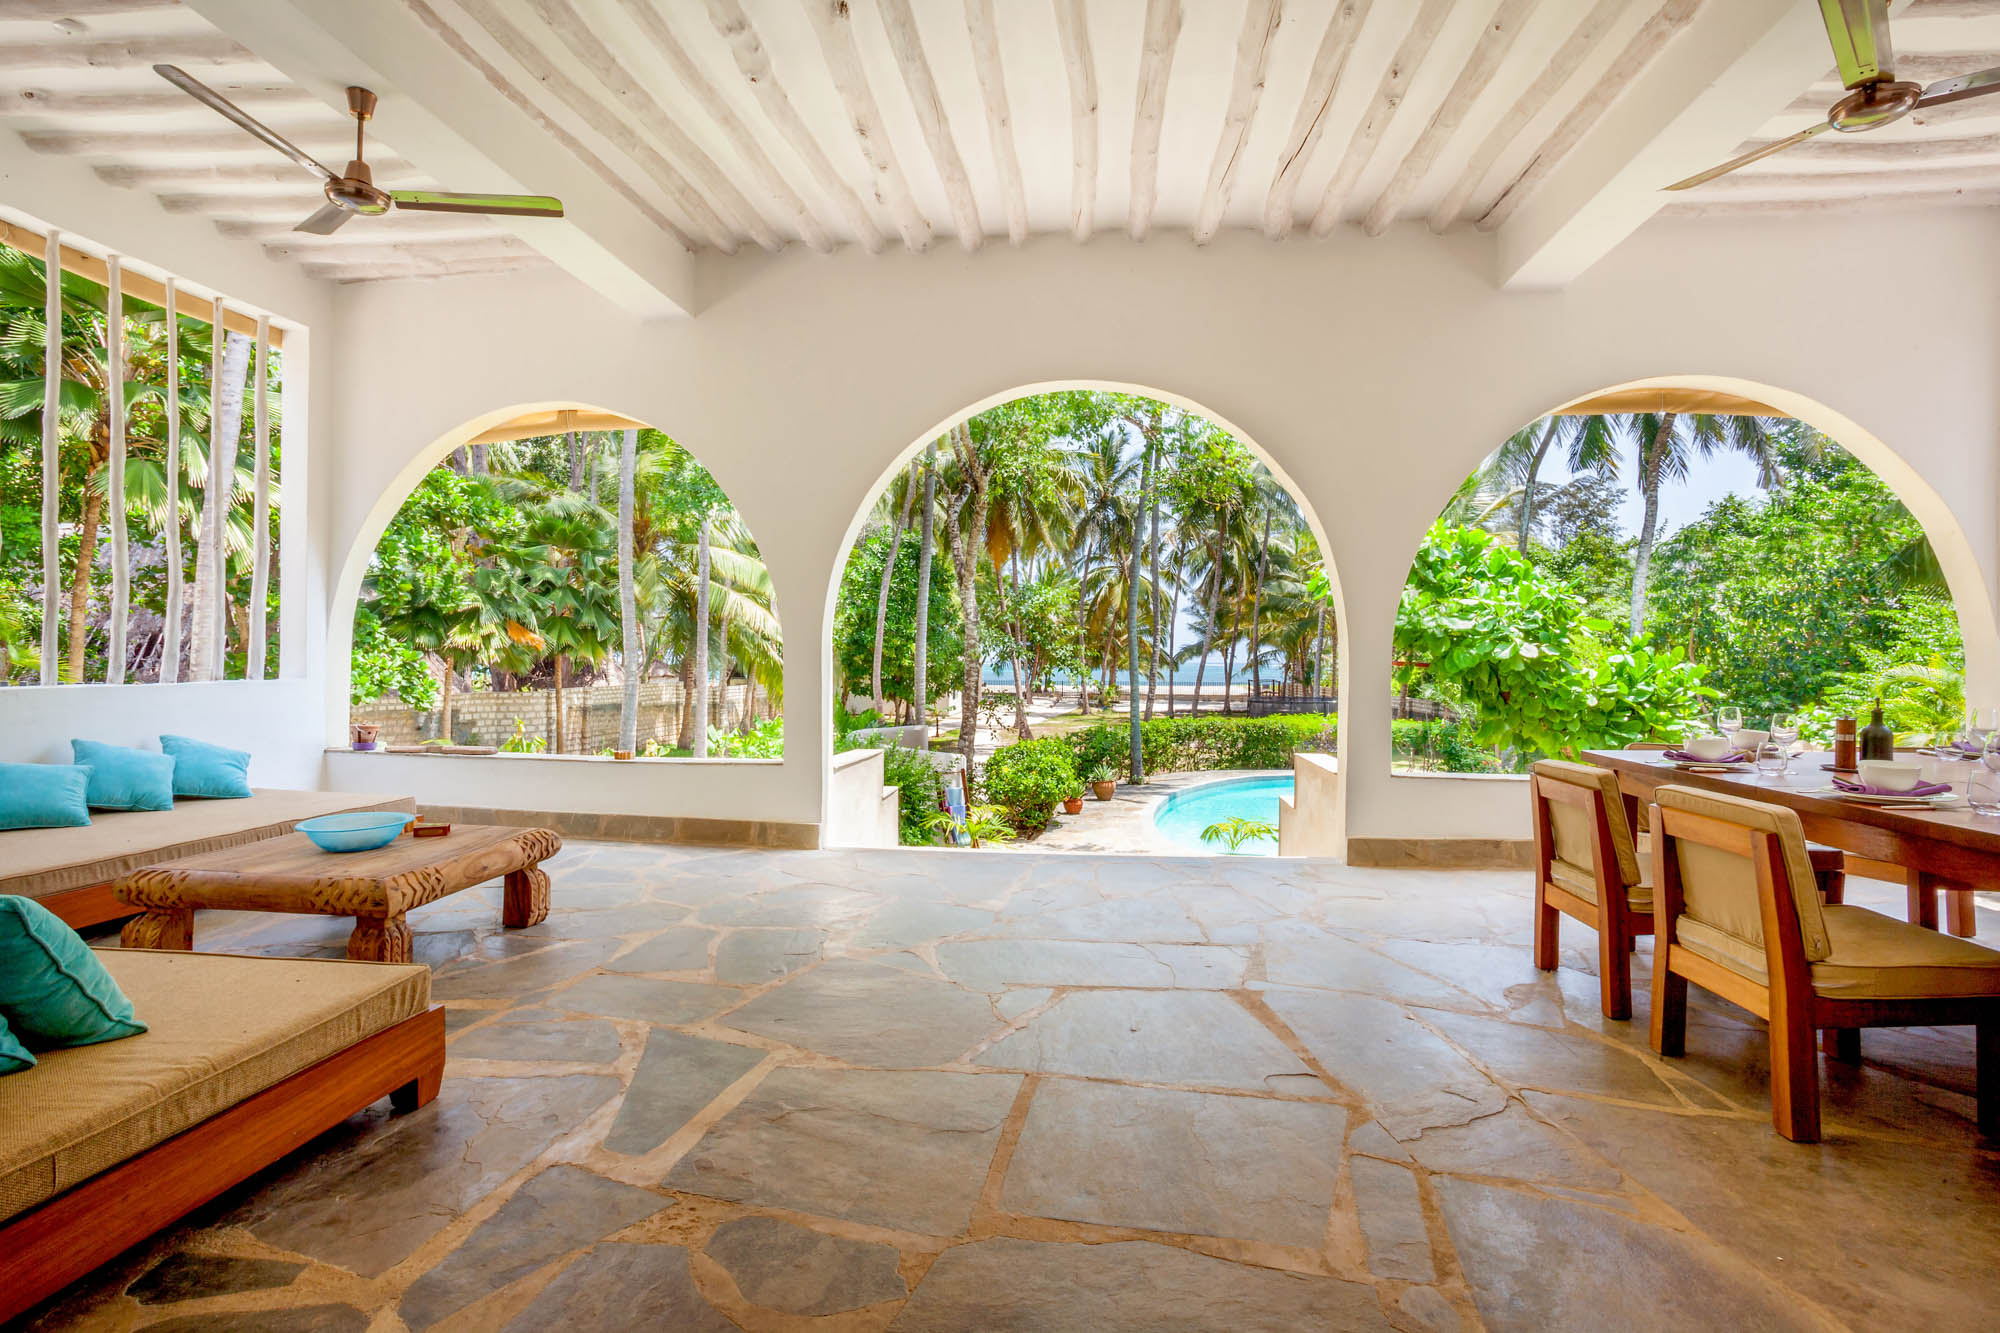 Terrace overlooking pool and beach